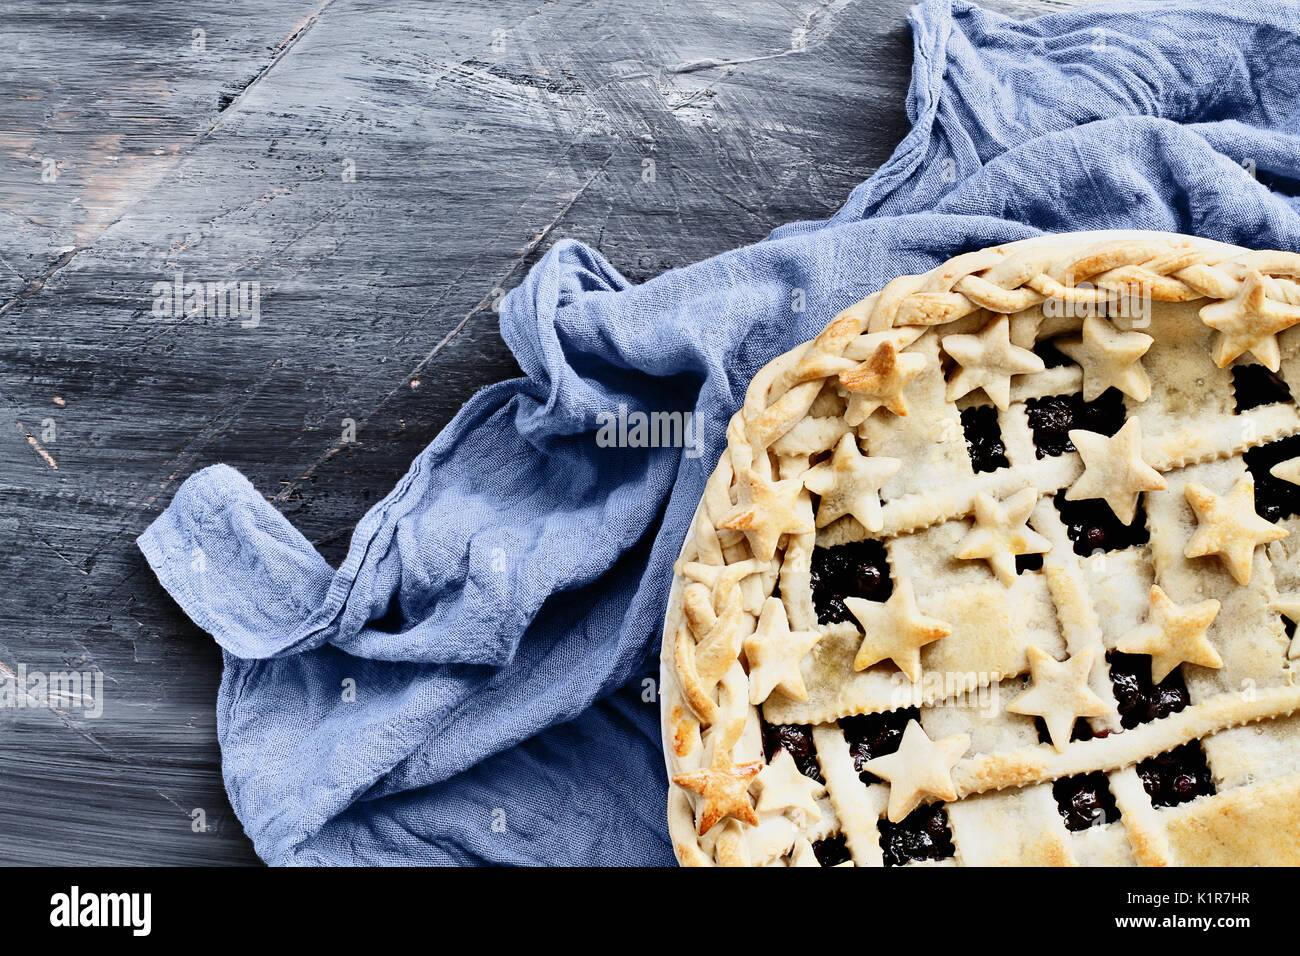 Top view of a blueberry pie with lattice and stars crust with grey napkin over an industrial artistic wooden background. - Stock Image